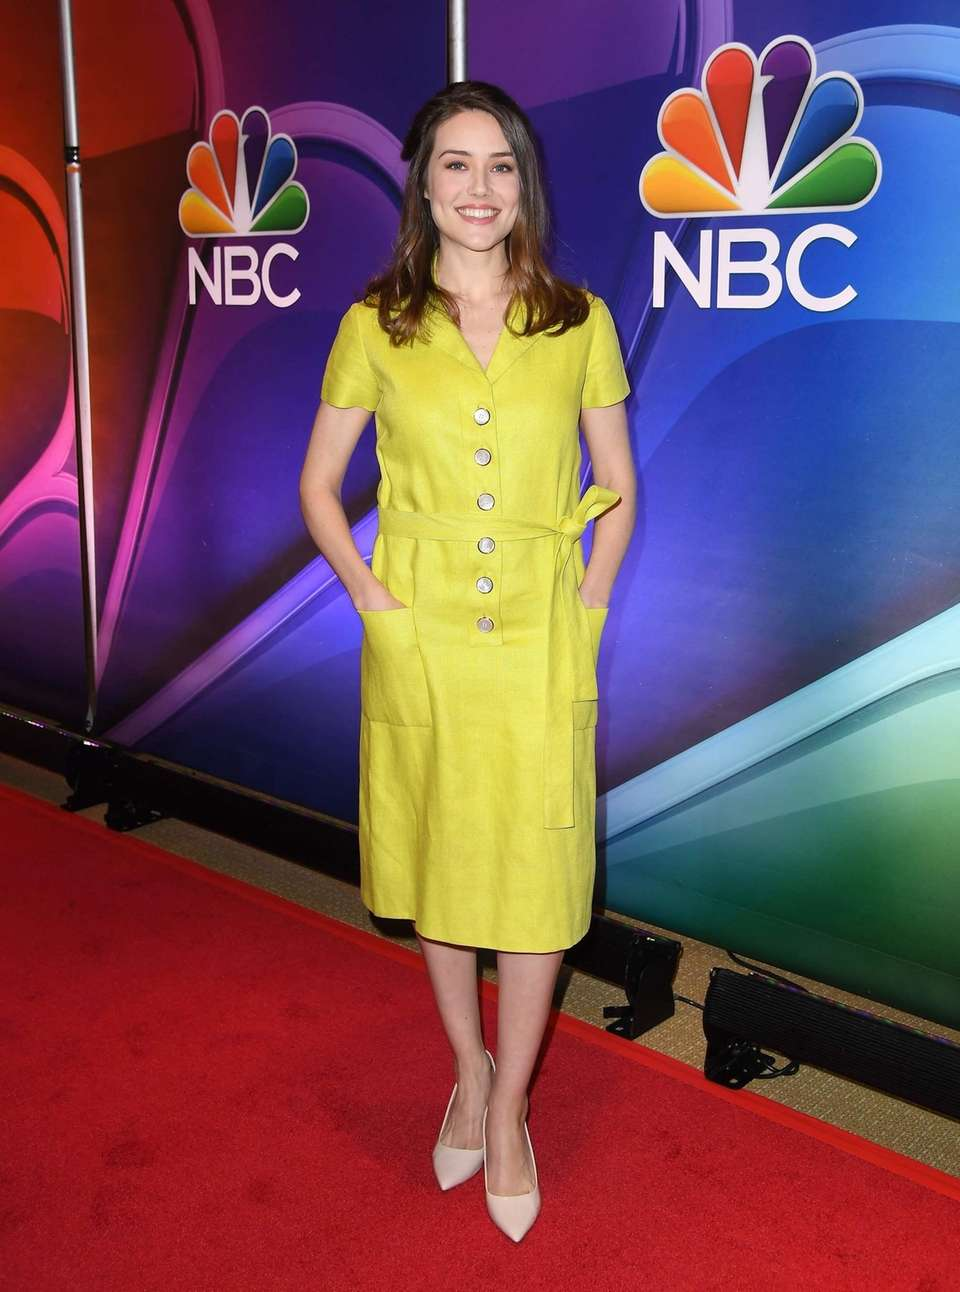 Actress Megan Boone attends the NBC Mid-Season Press